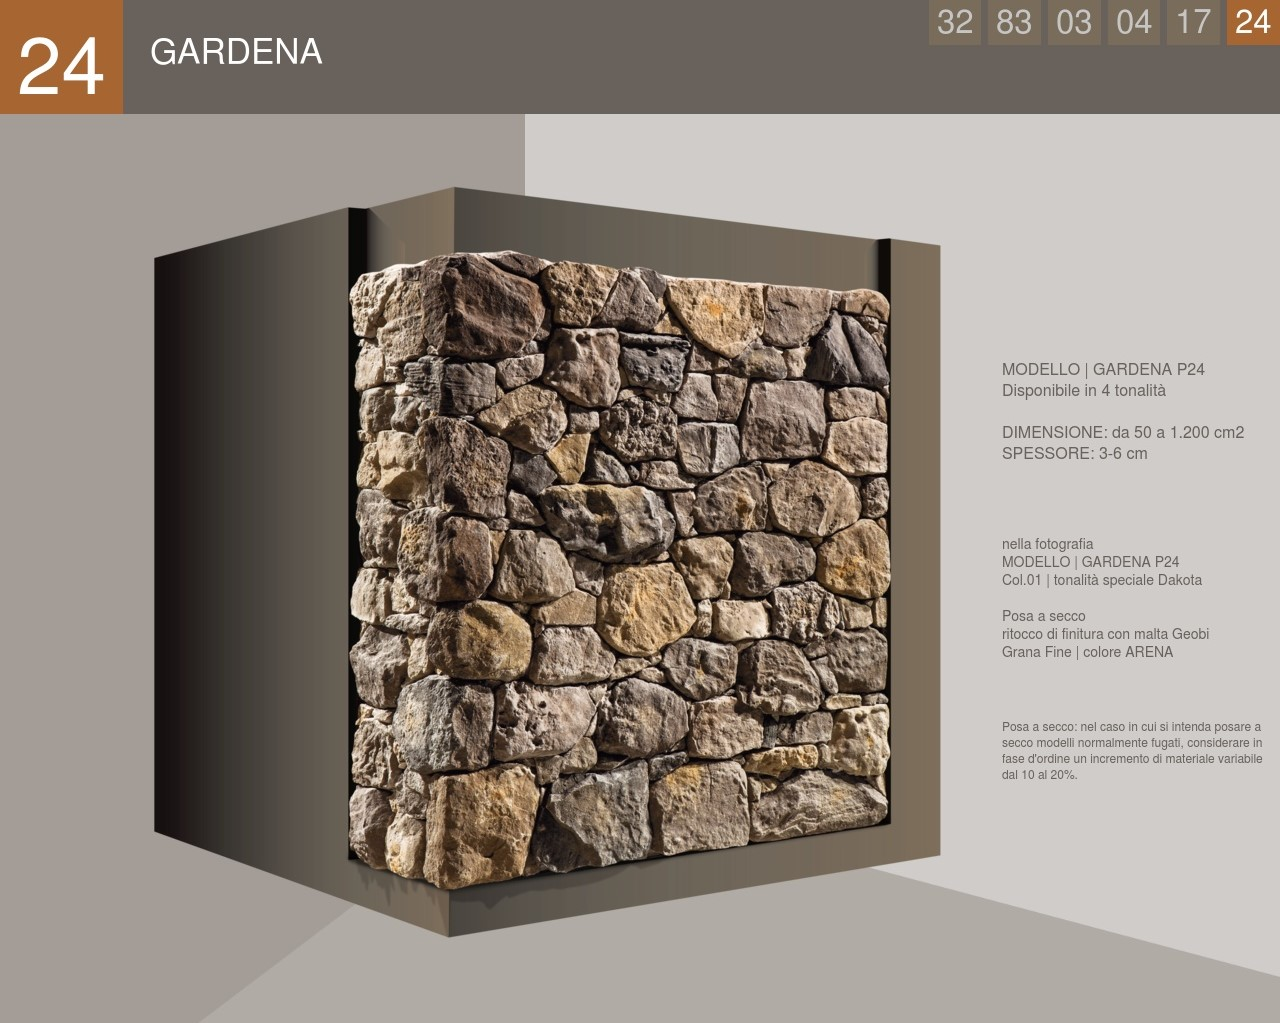 Stone covering with an uncertain profile of the Gardena model